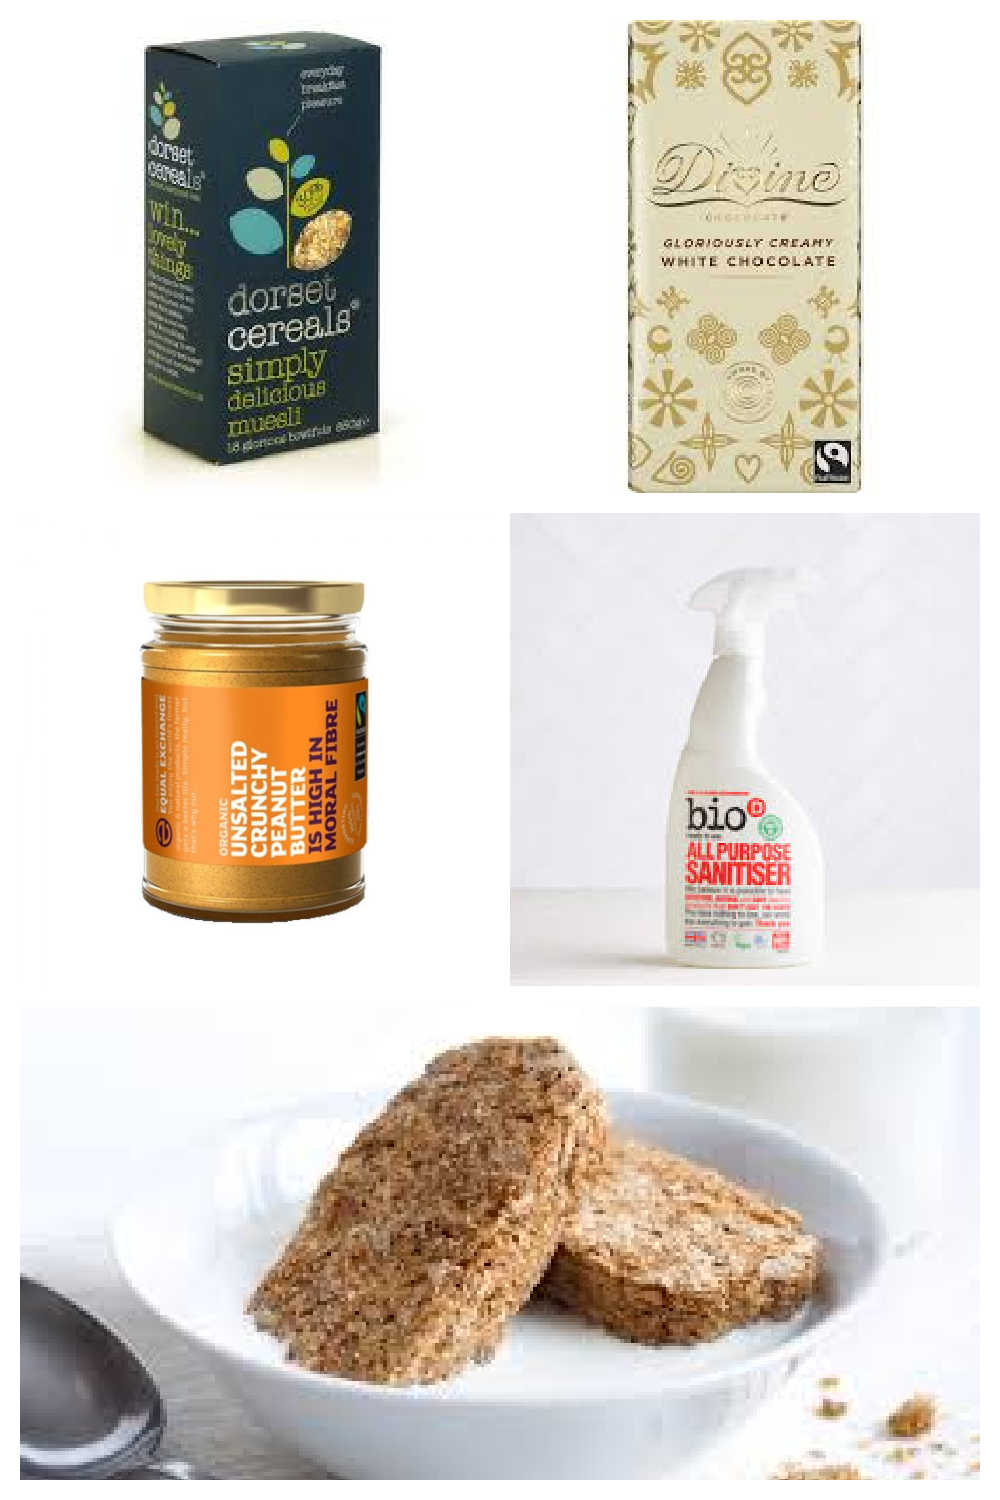 palm oil free shopping guide